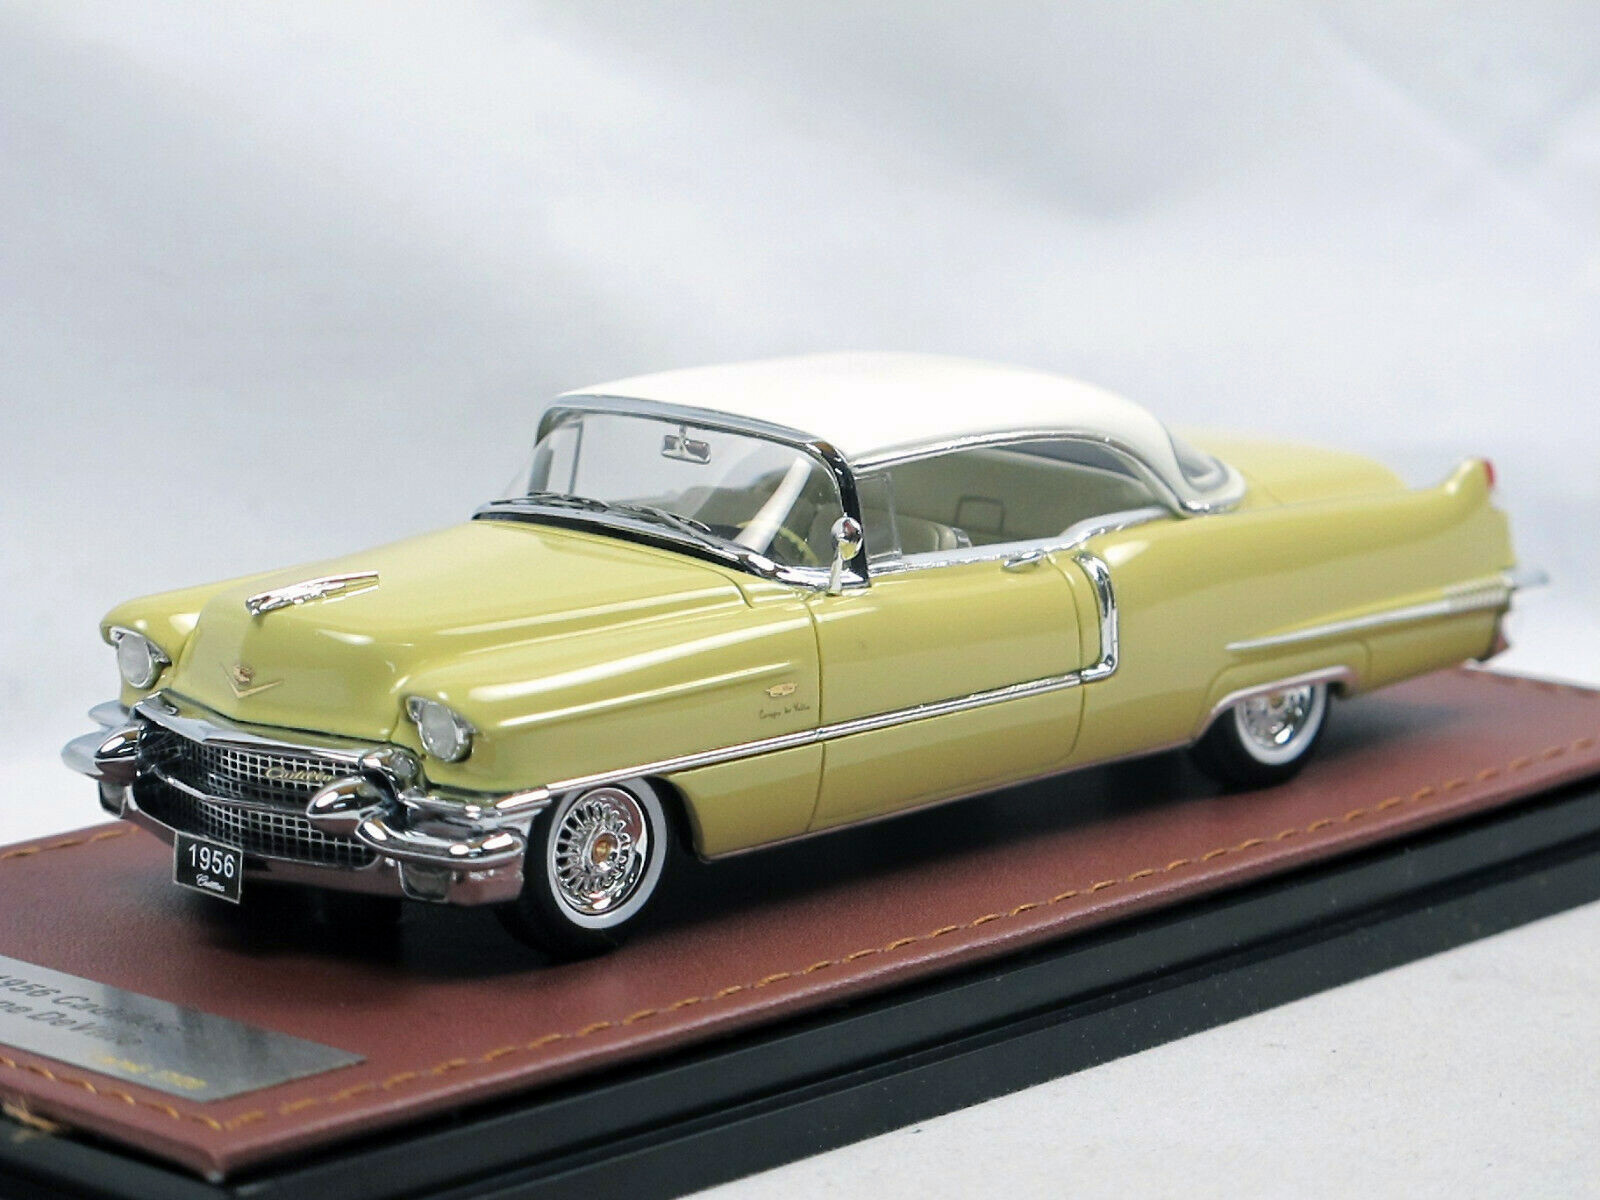 Cadillac Coupe DeVille '56 Goddess Gold & White_Ltd Ed 1 of 60_GLM119402